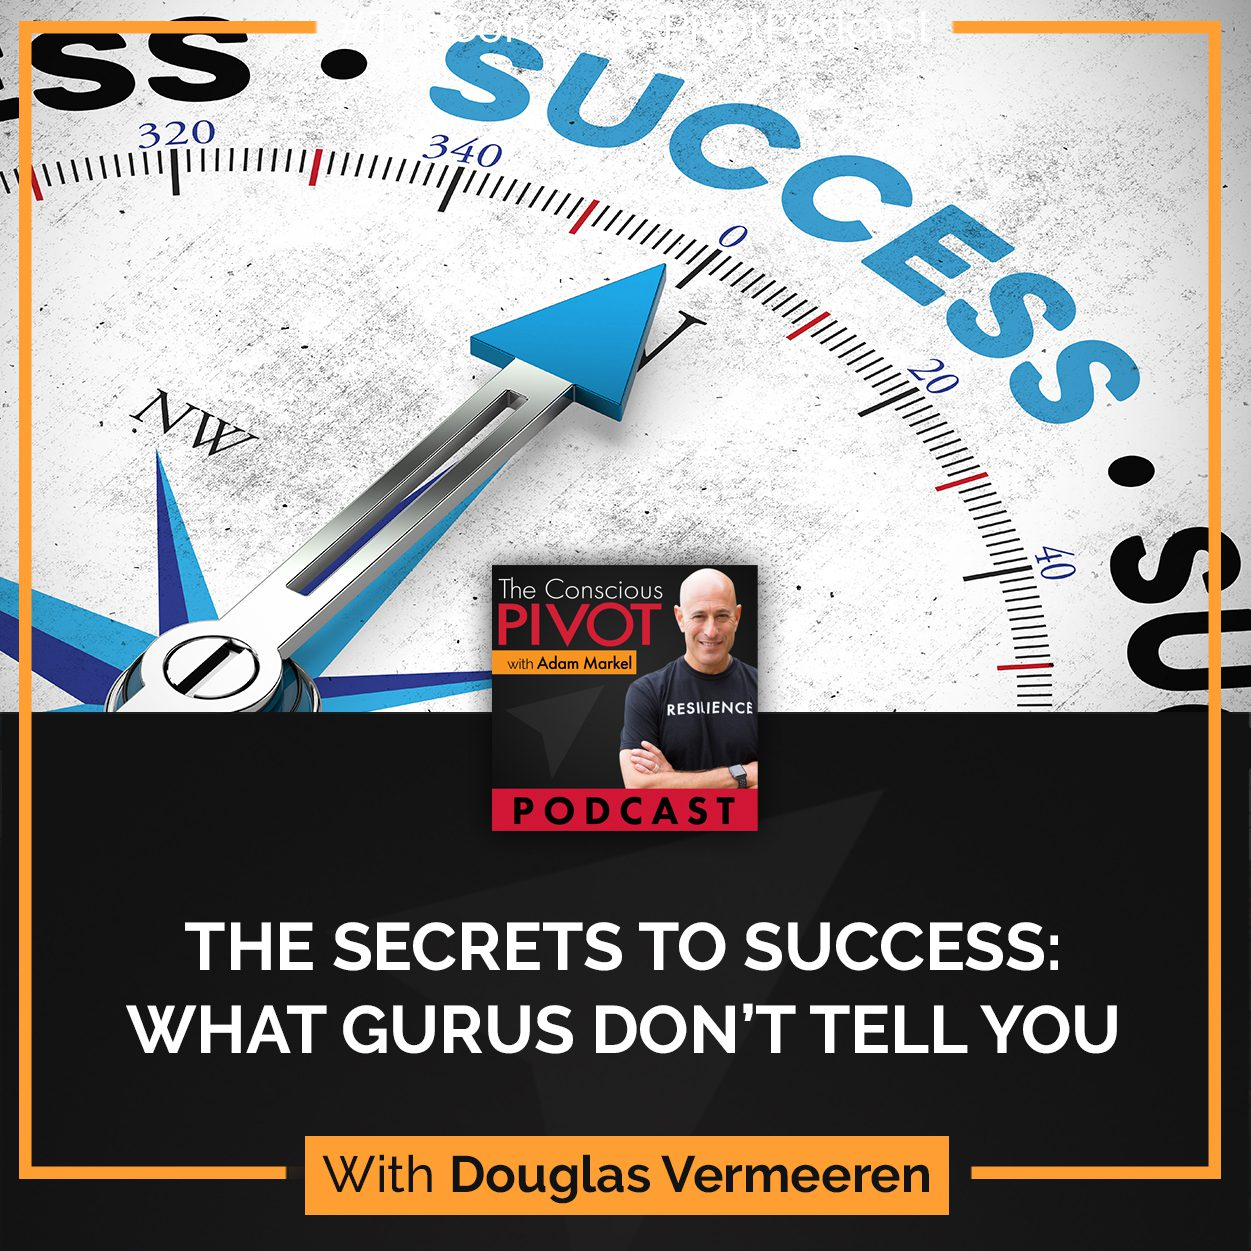 The Secrets To Success: What Gurus Don't Tell You With Douglas Vermeeren